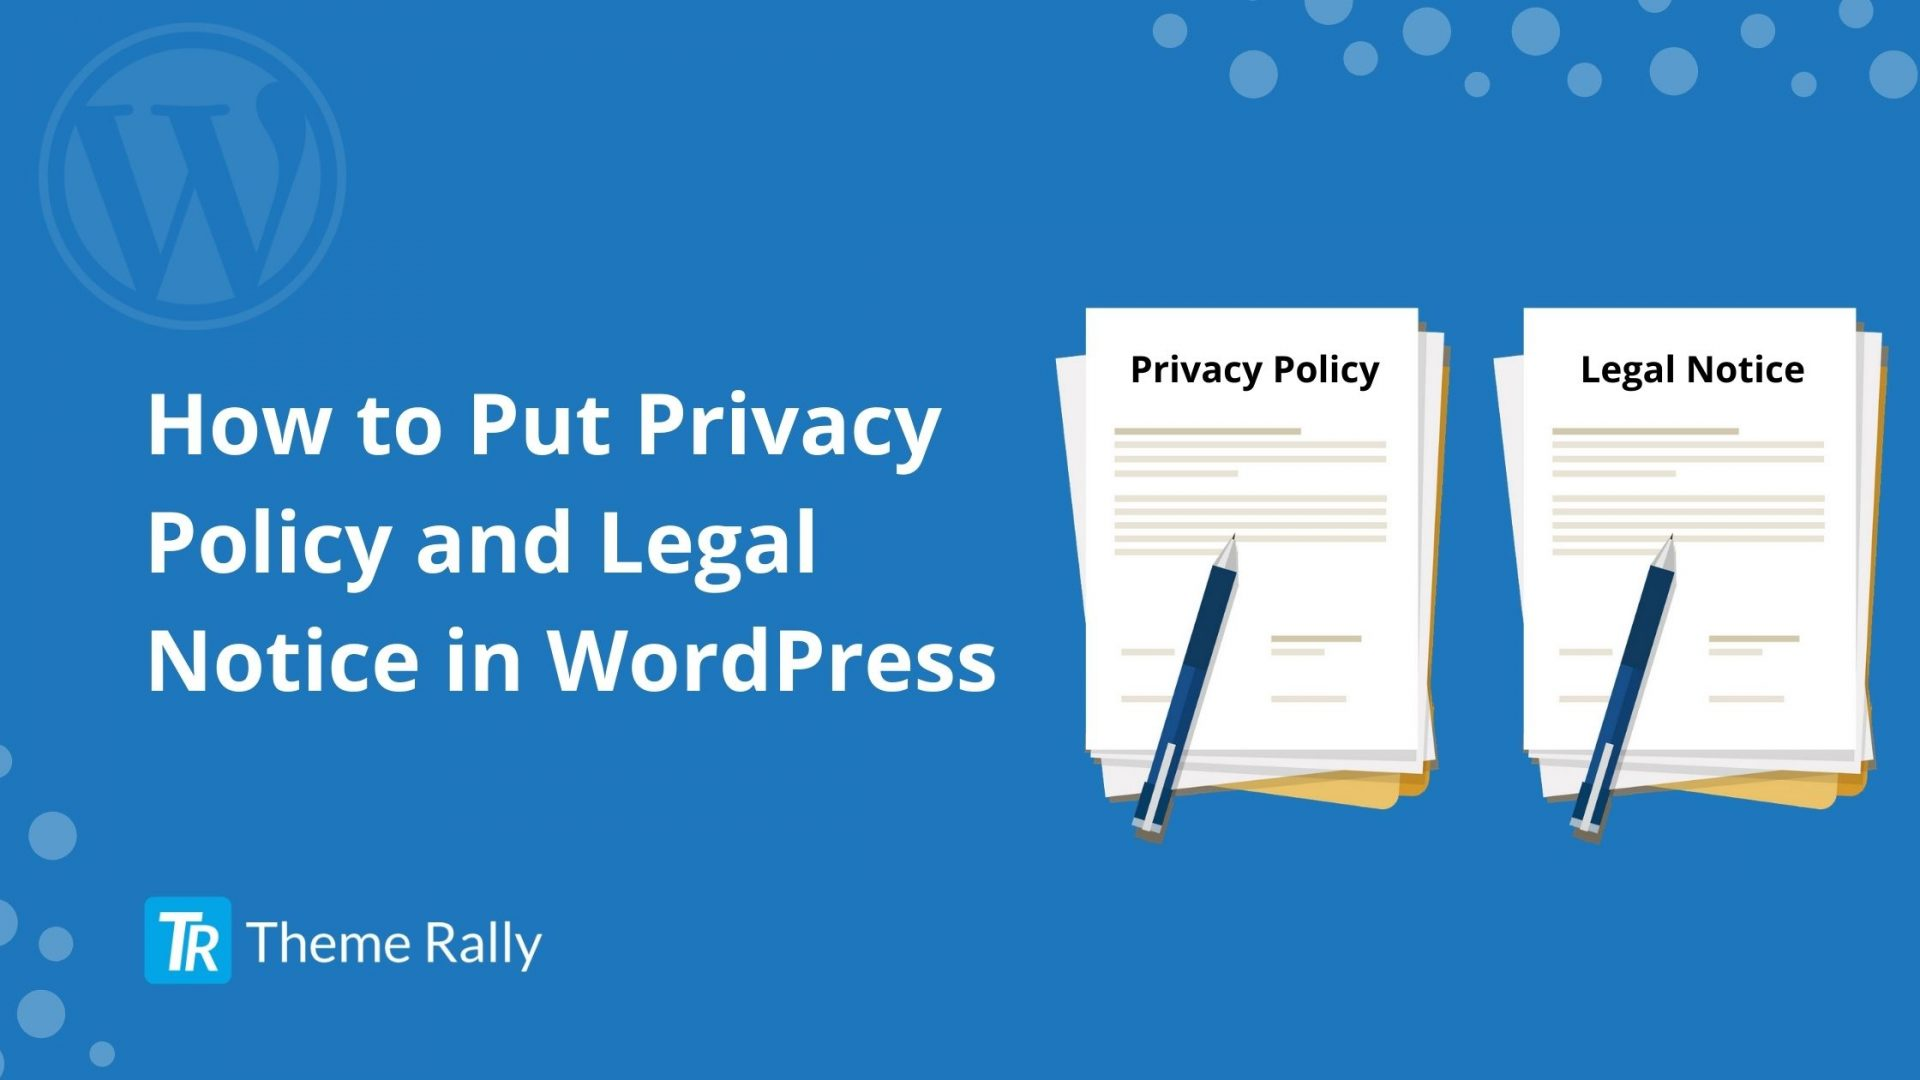 How to Put Privacy Policy and Legal Notice in WordPress